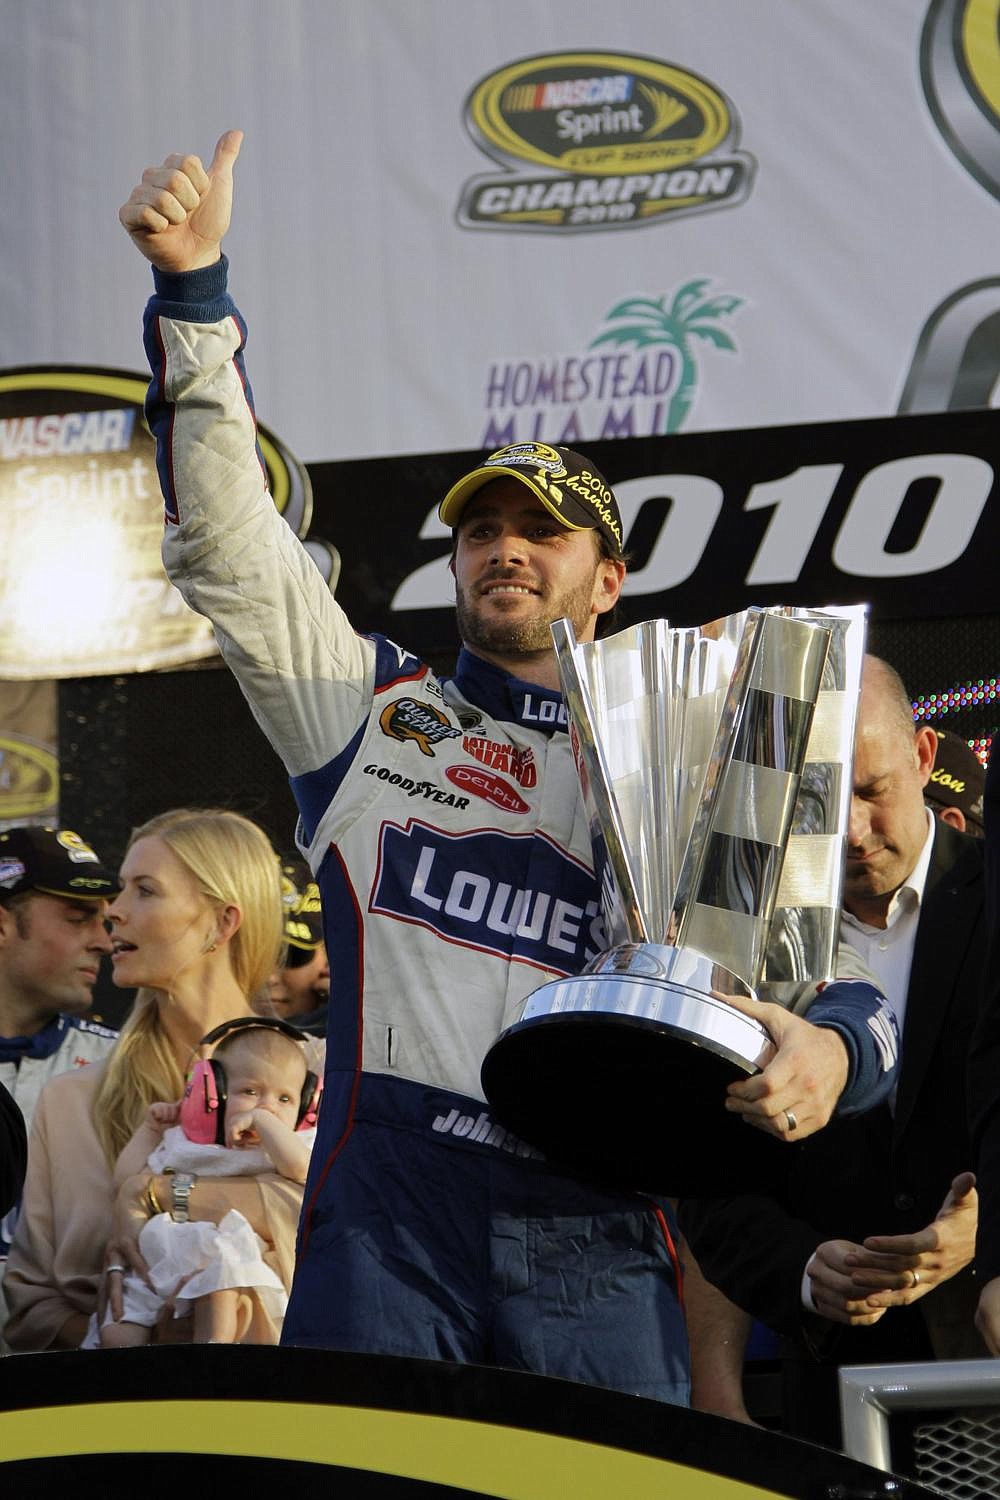 Jimmie Johnson sat out last Sunday's race at Indianapolis Motor Speedway, snapping a streak of 663 consecutive starts.